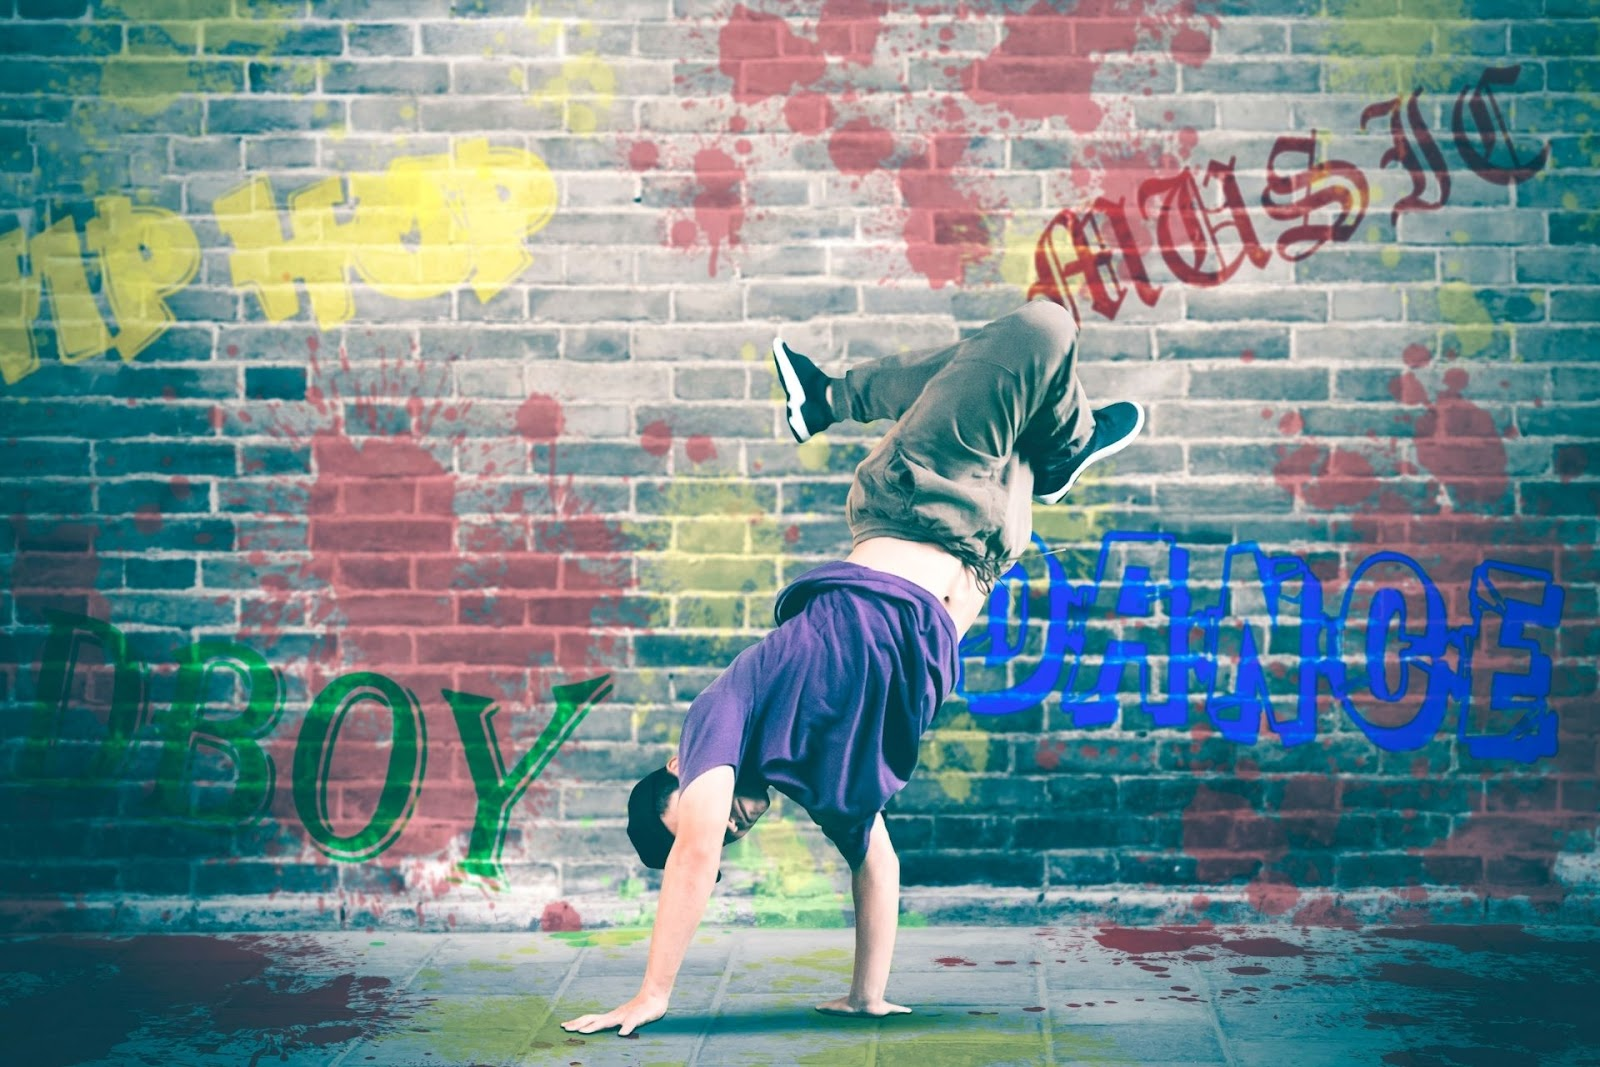 A person break dancing in front of a wall covered in graffiti